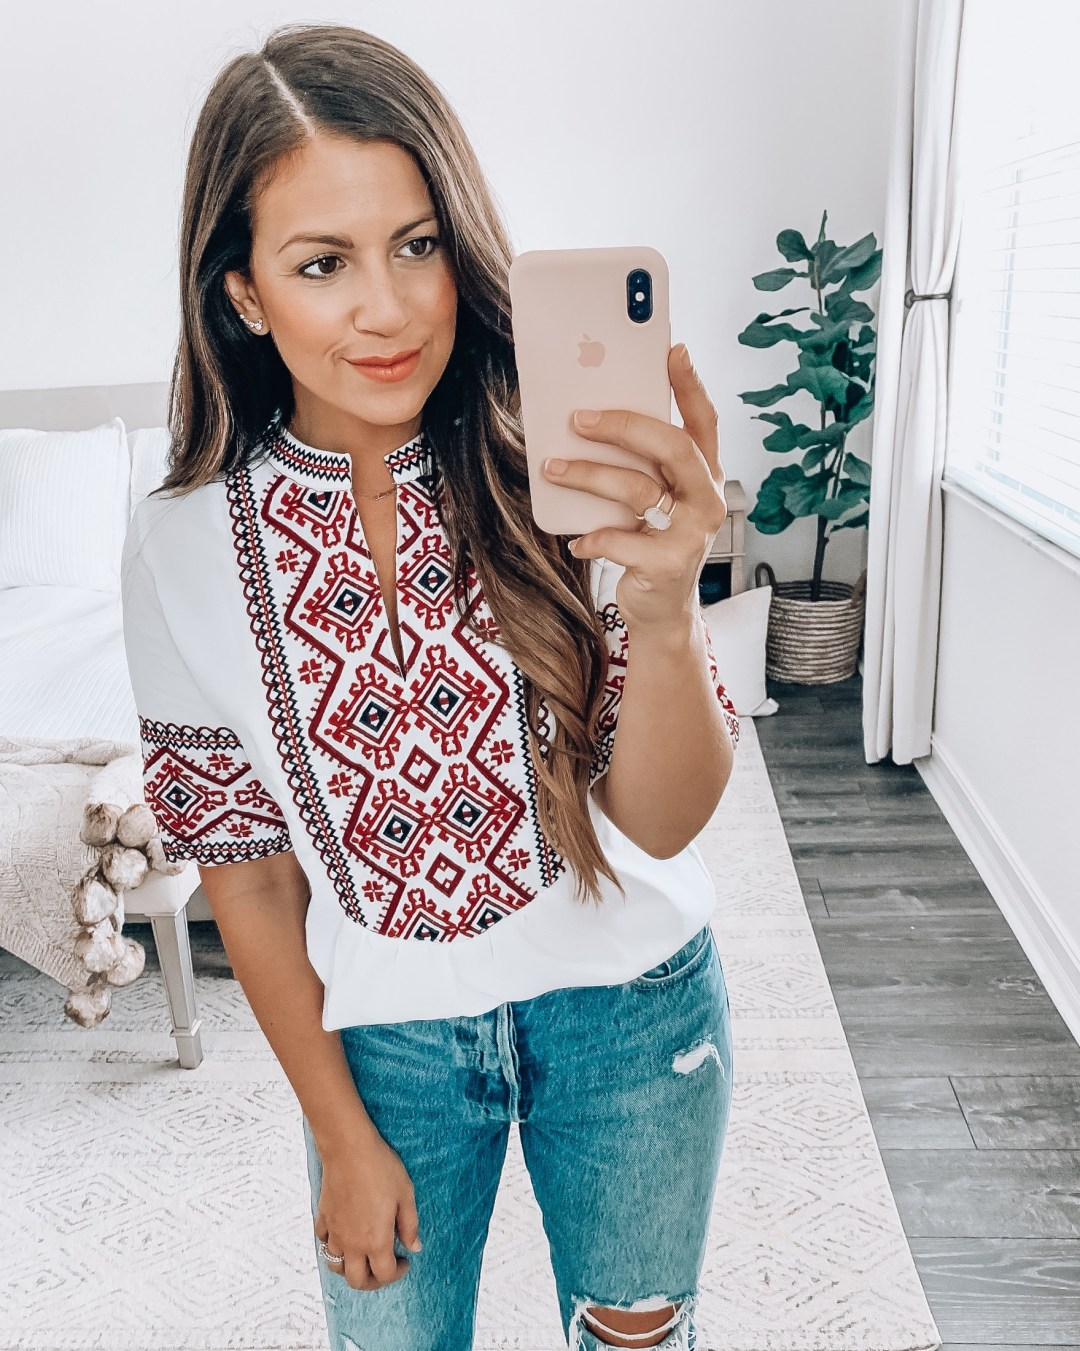 Amazon Fashion boho style top, Amazon Fashion Haul by Jaime Cittadino